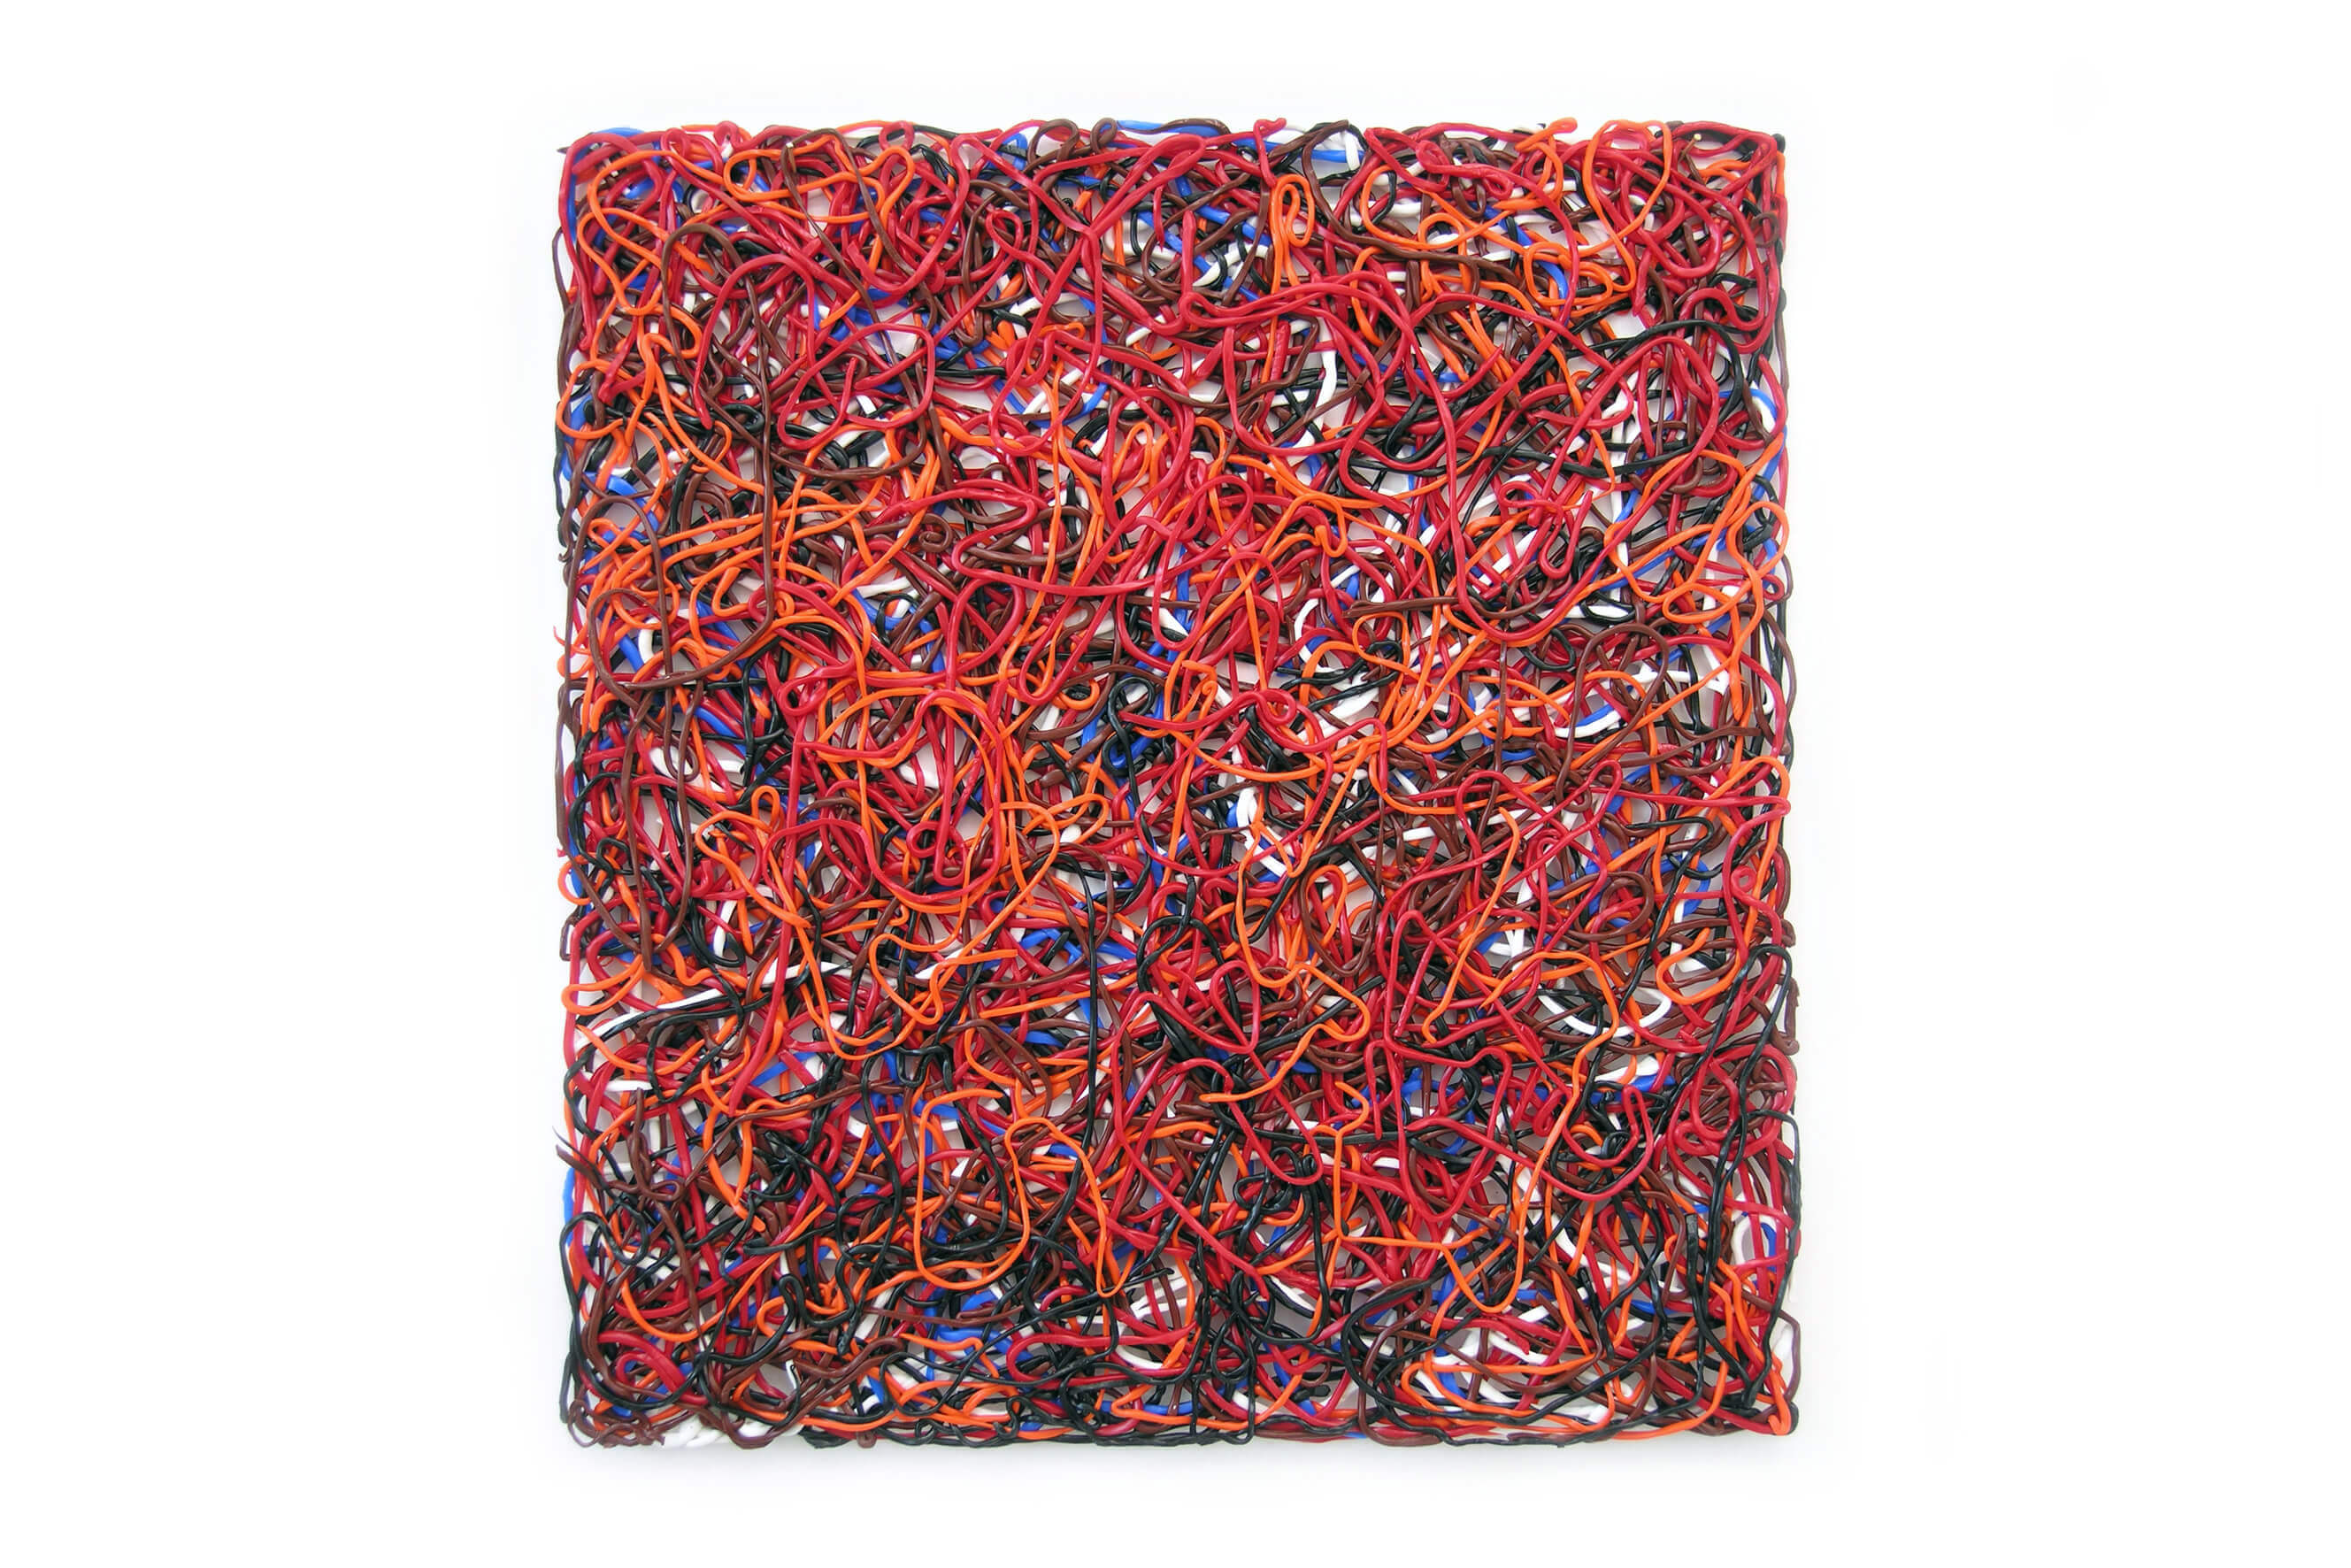 #906 (String and Red), 2009